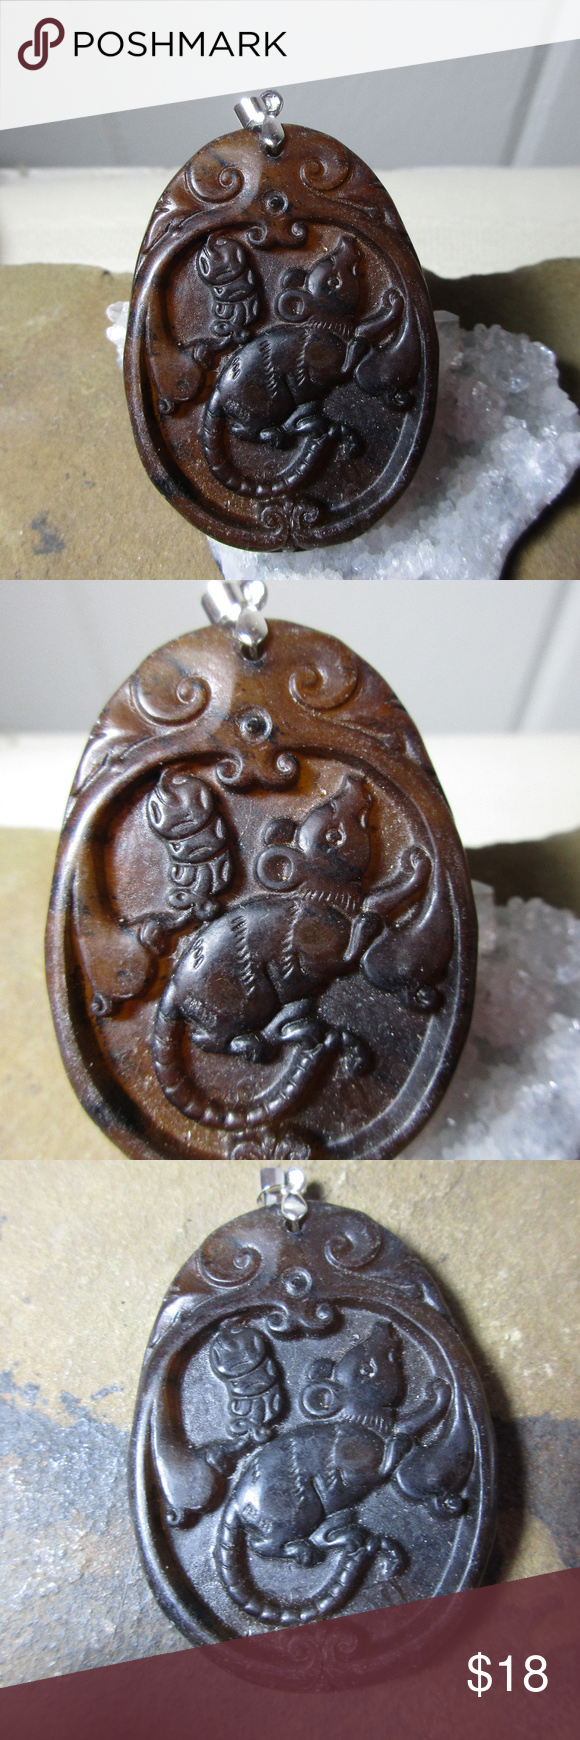 Old jade rat chinese zodiac sign pendant necklace da rat